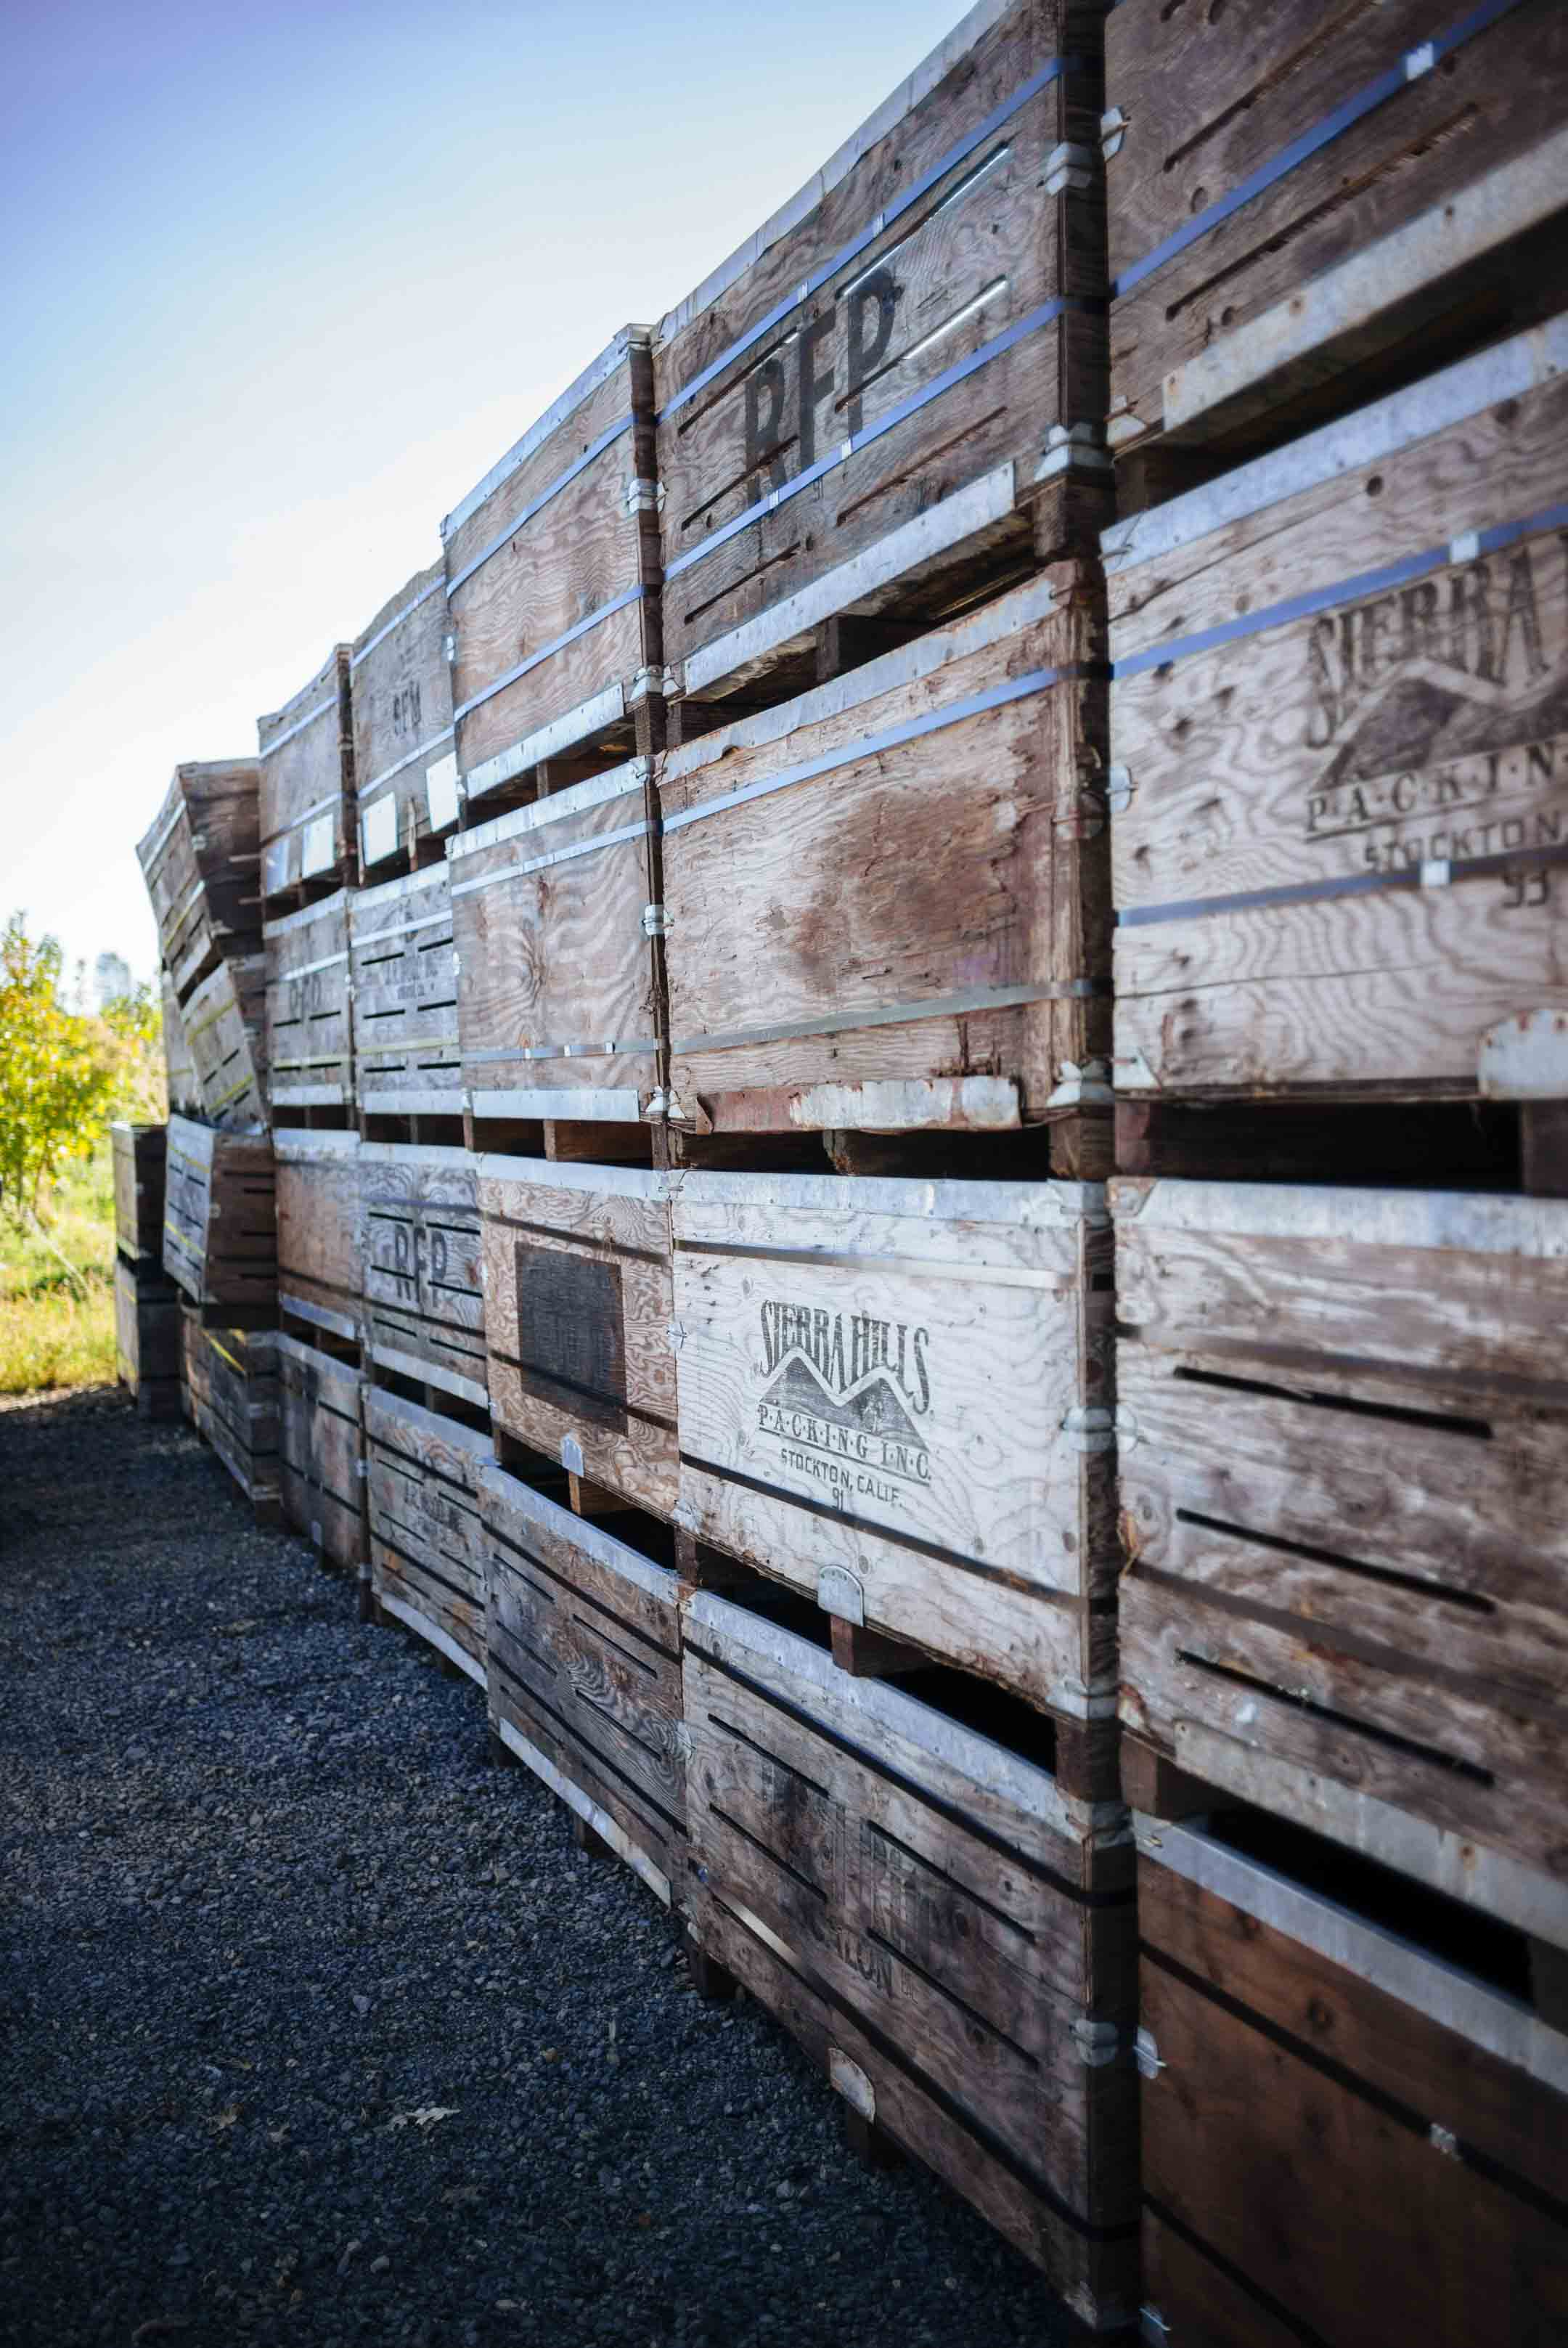 Indigeny Reserve, a 160 acre apple orchard that specializes in the production of cider and French-style apple brandy.